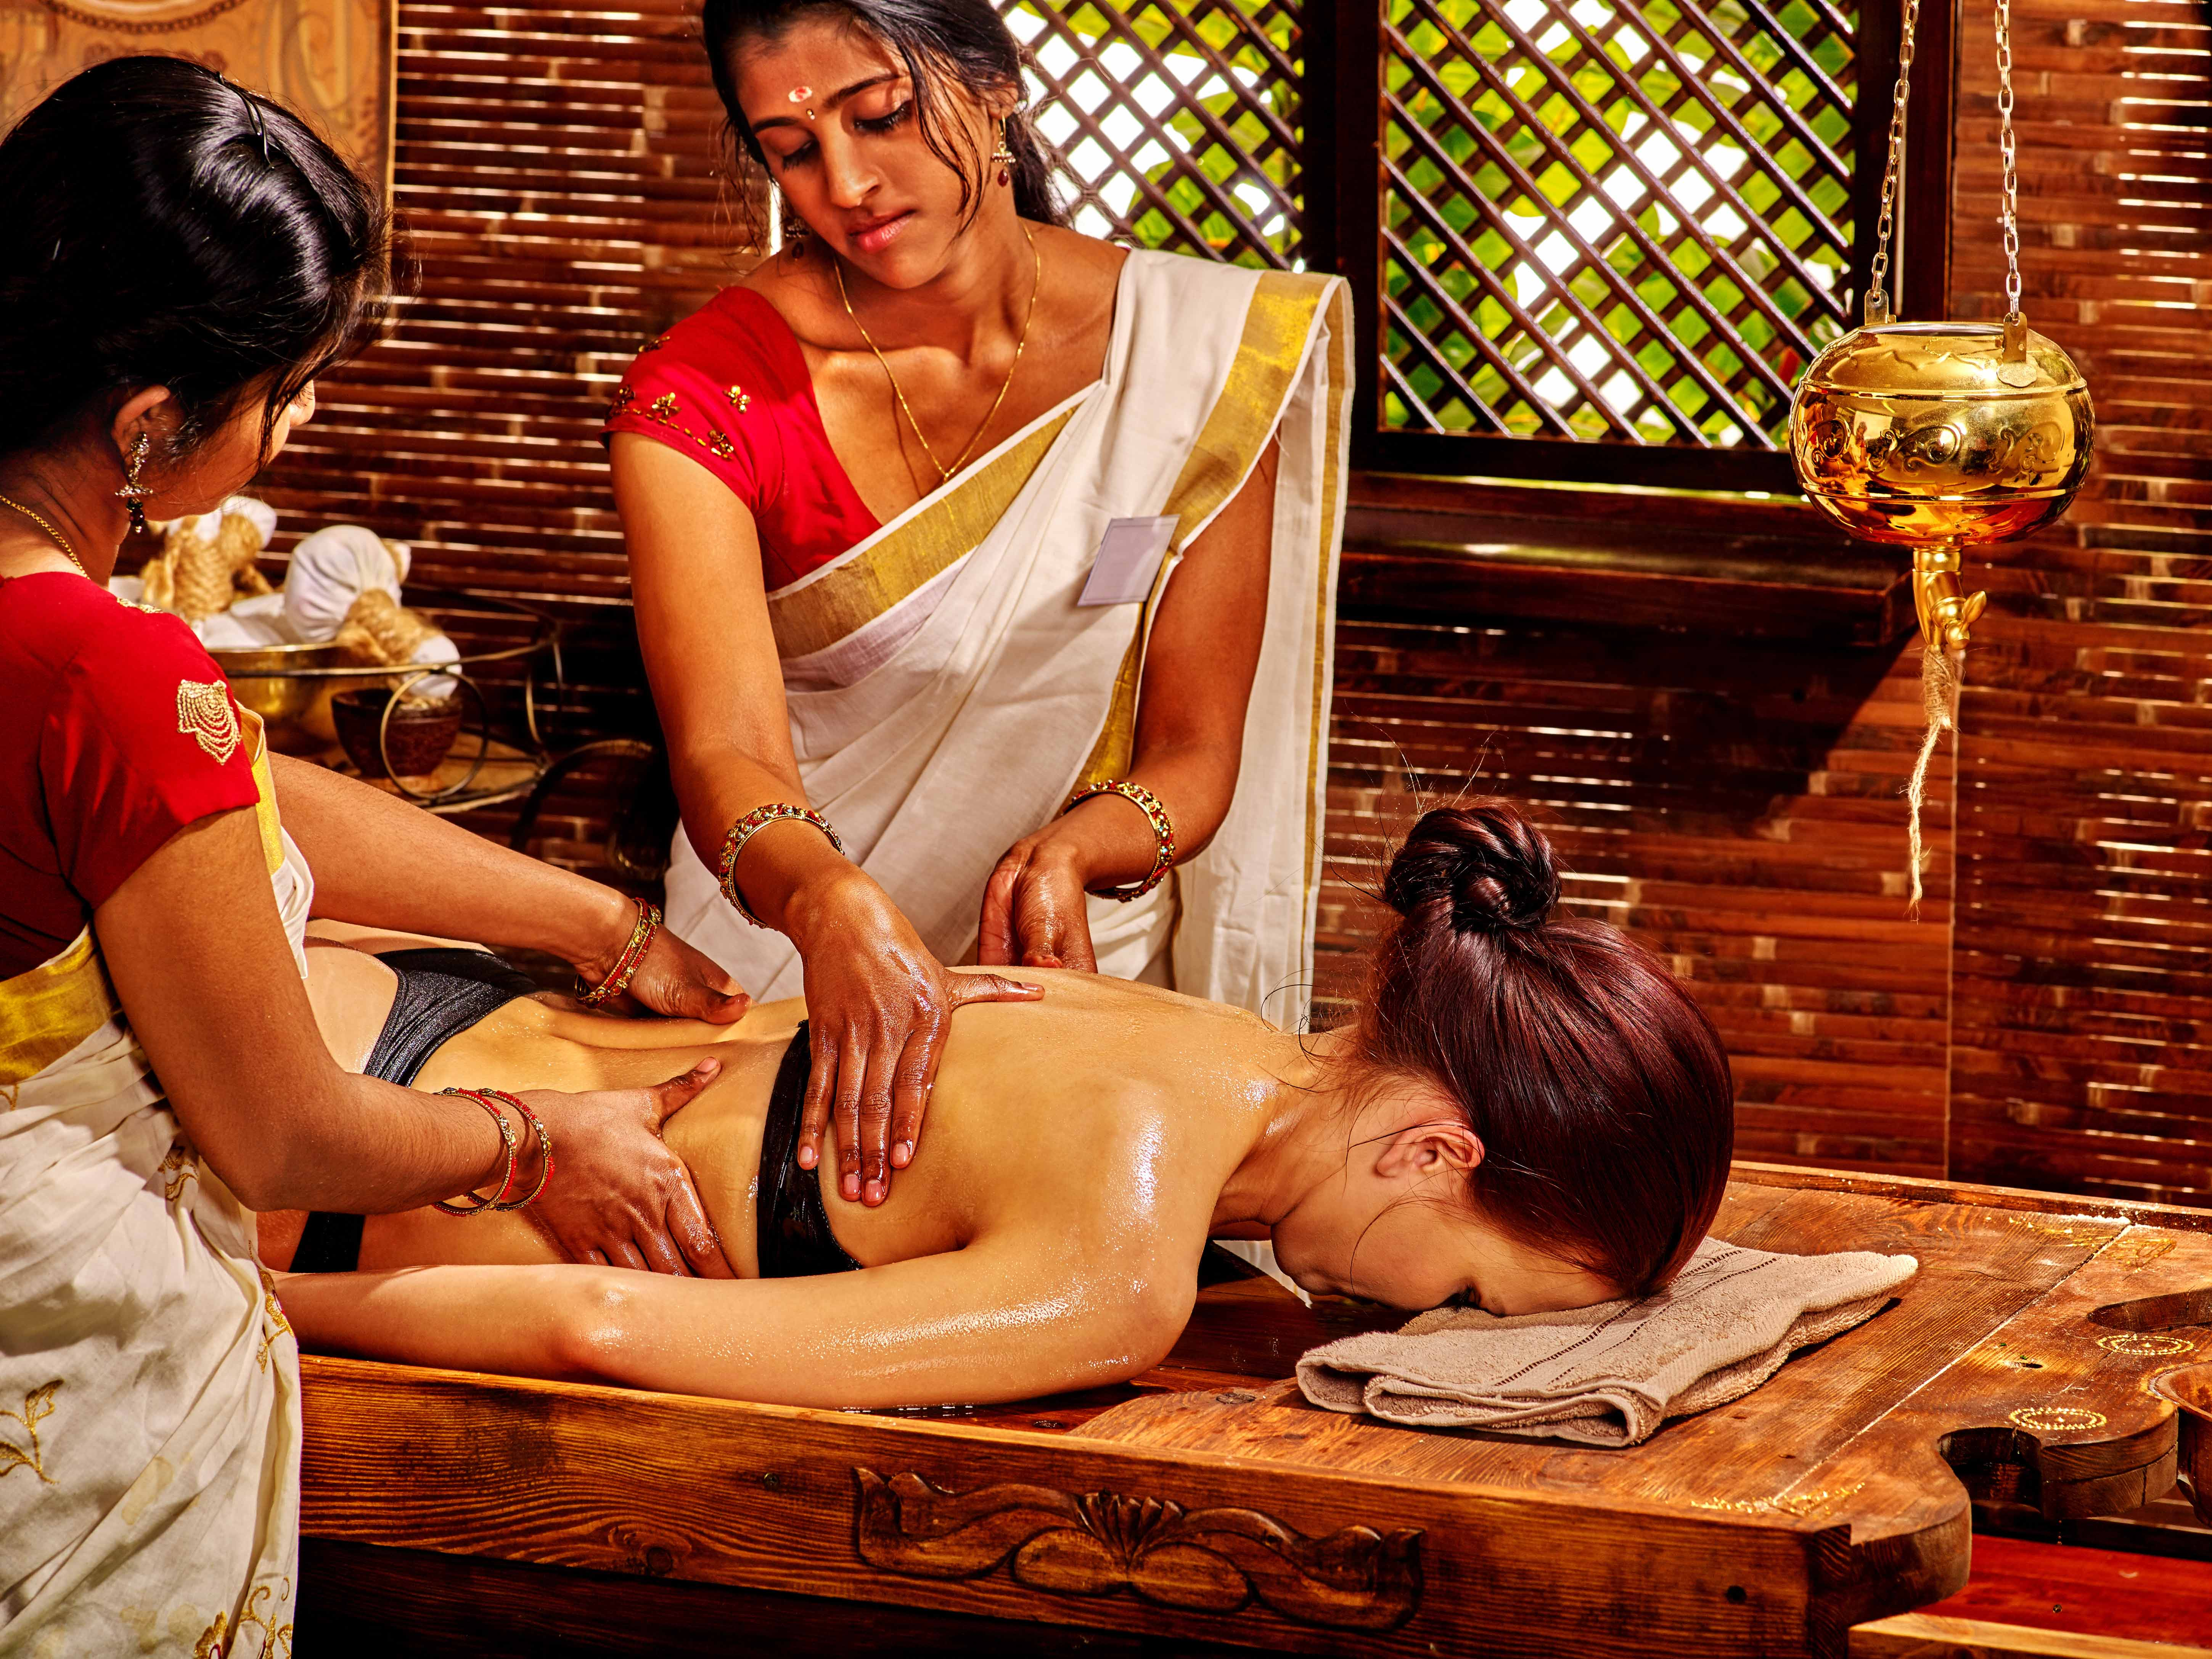 The Panchakarma Treatments - The highest principle in all Ayurveda treatments is their harmlessness